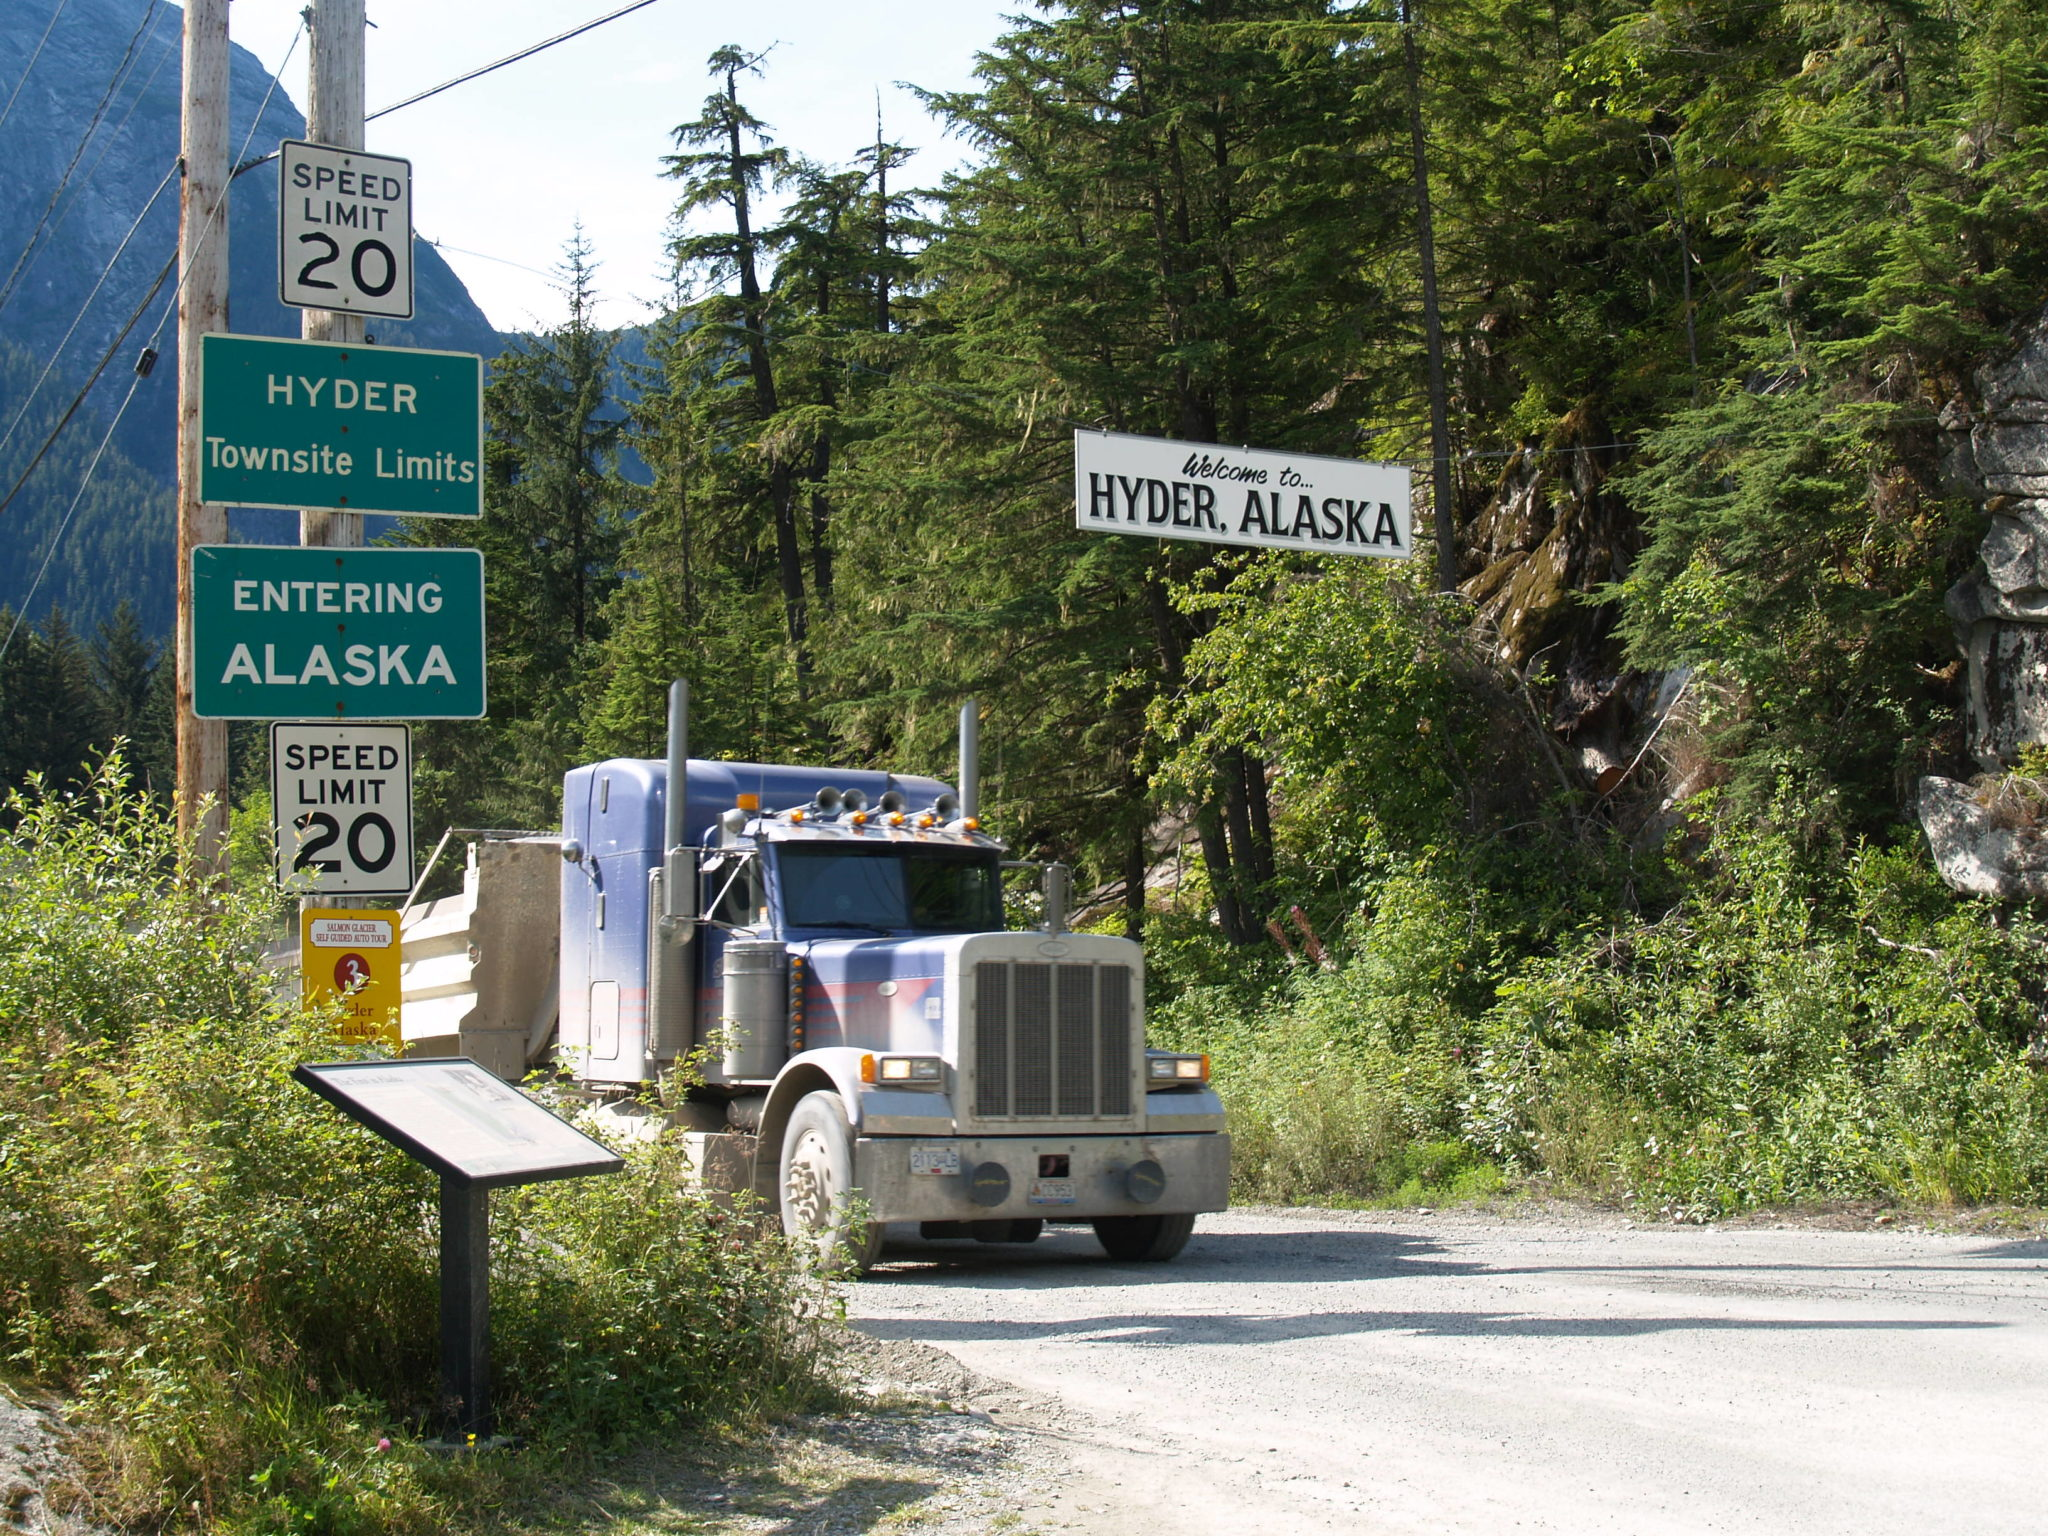 An unguarded border: Hyder, Alaska